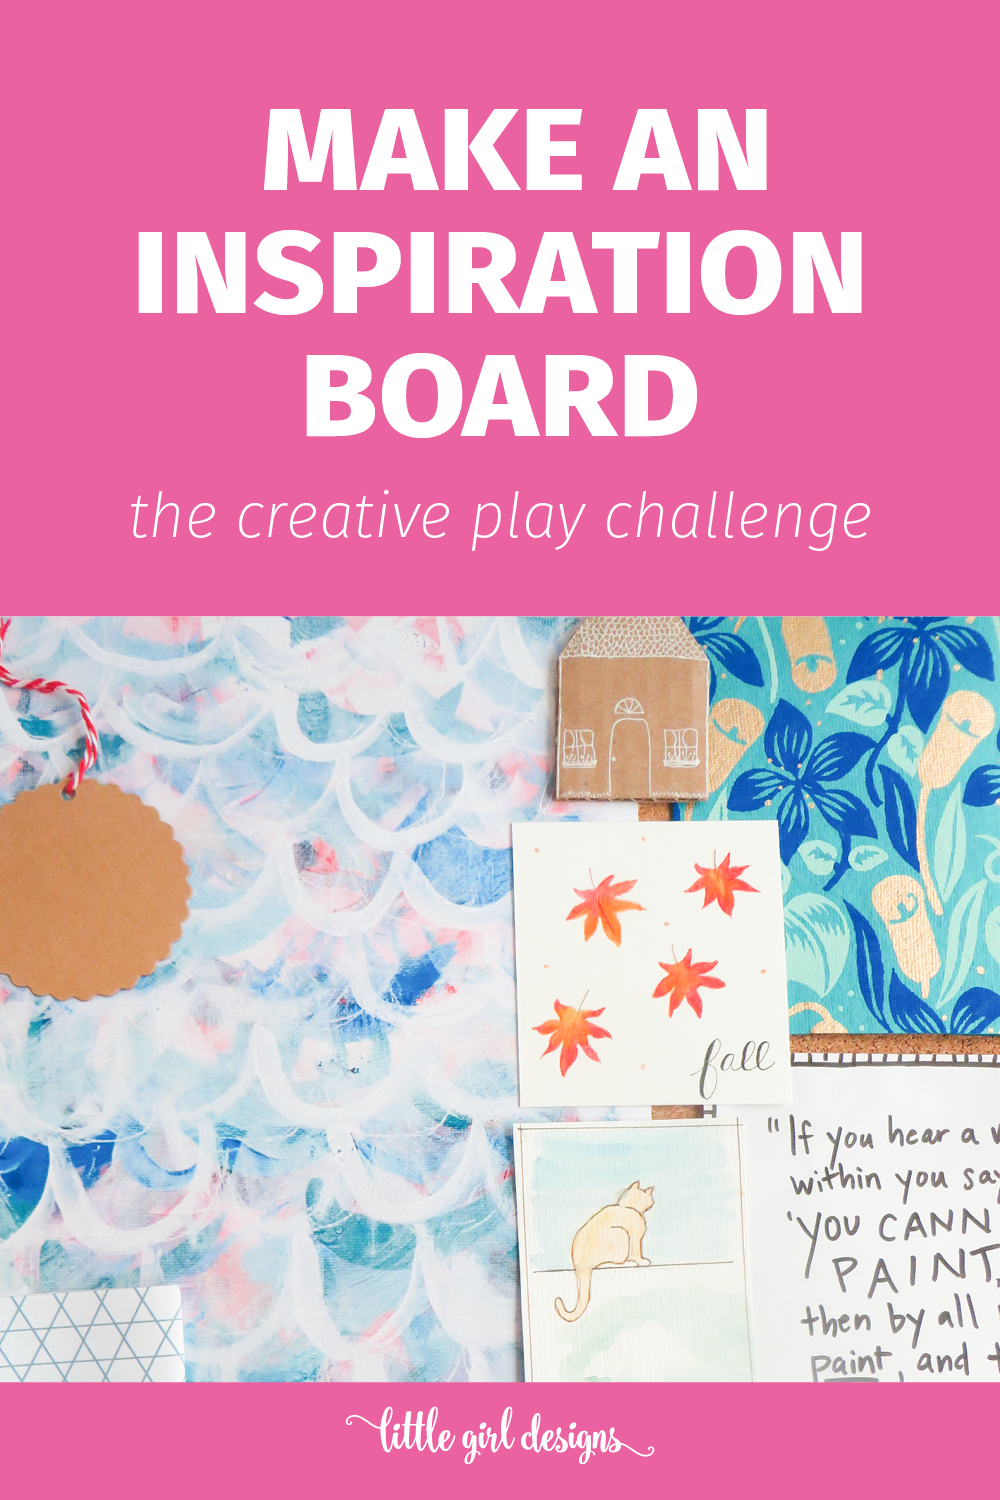 Gather your materials to make this DIY inspiration board. I love having one of these in my craft room and office as well as in my art journals.